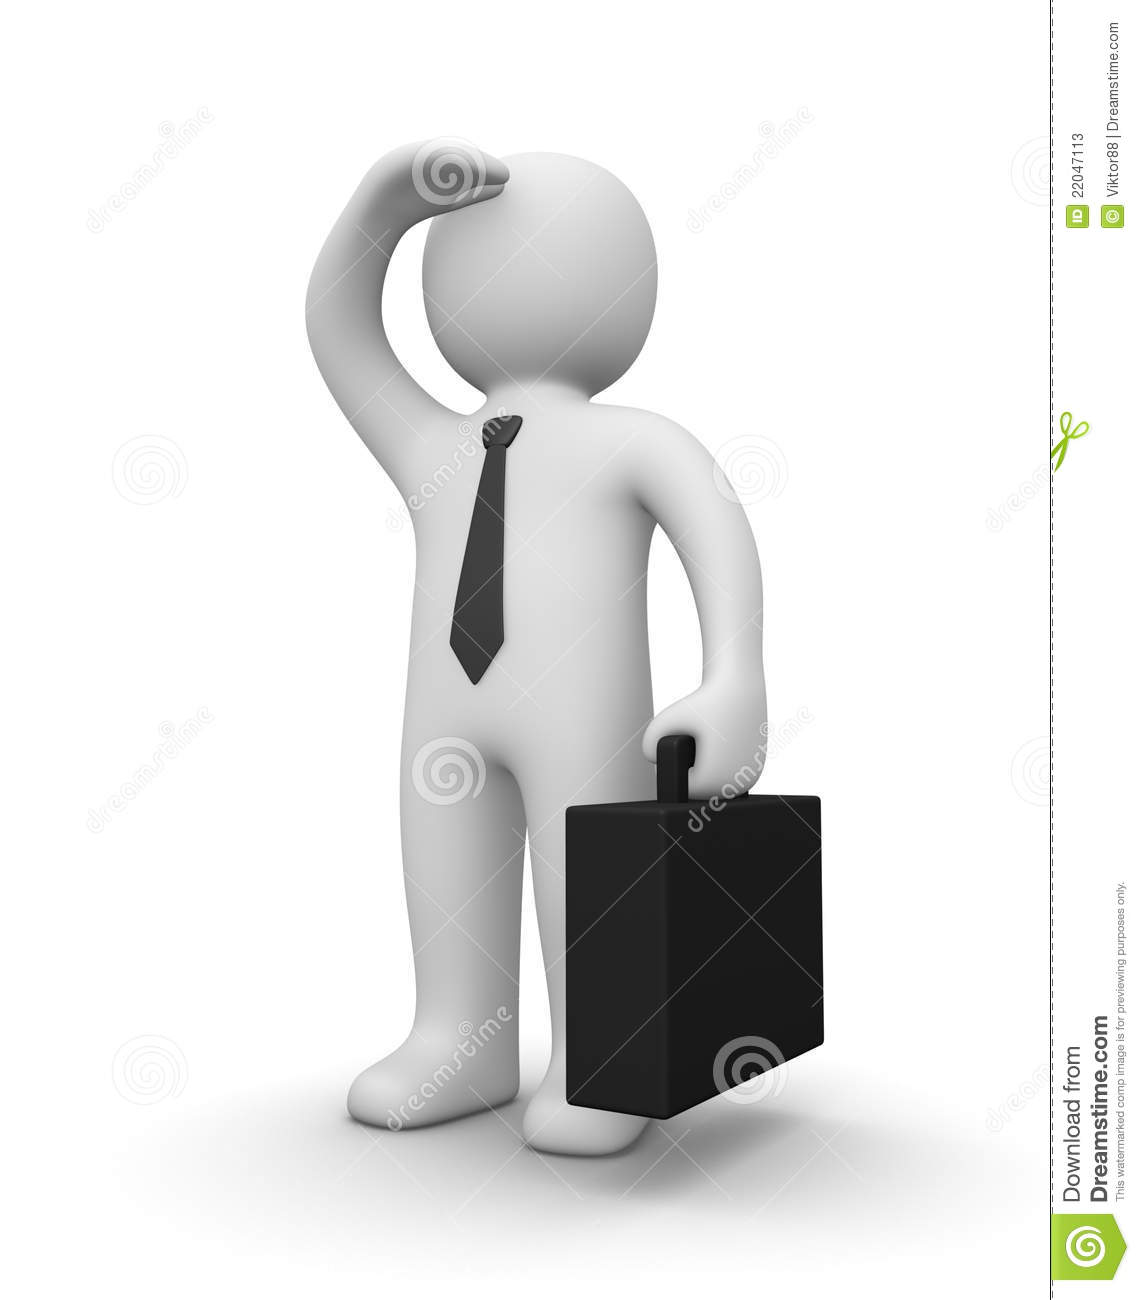 3d man with tie and suitcase looking ahead.